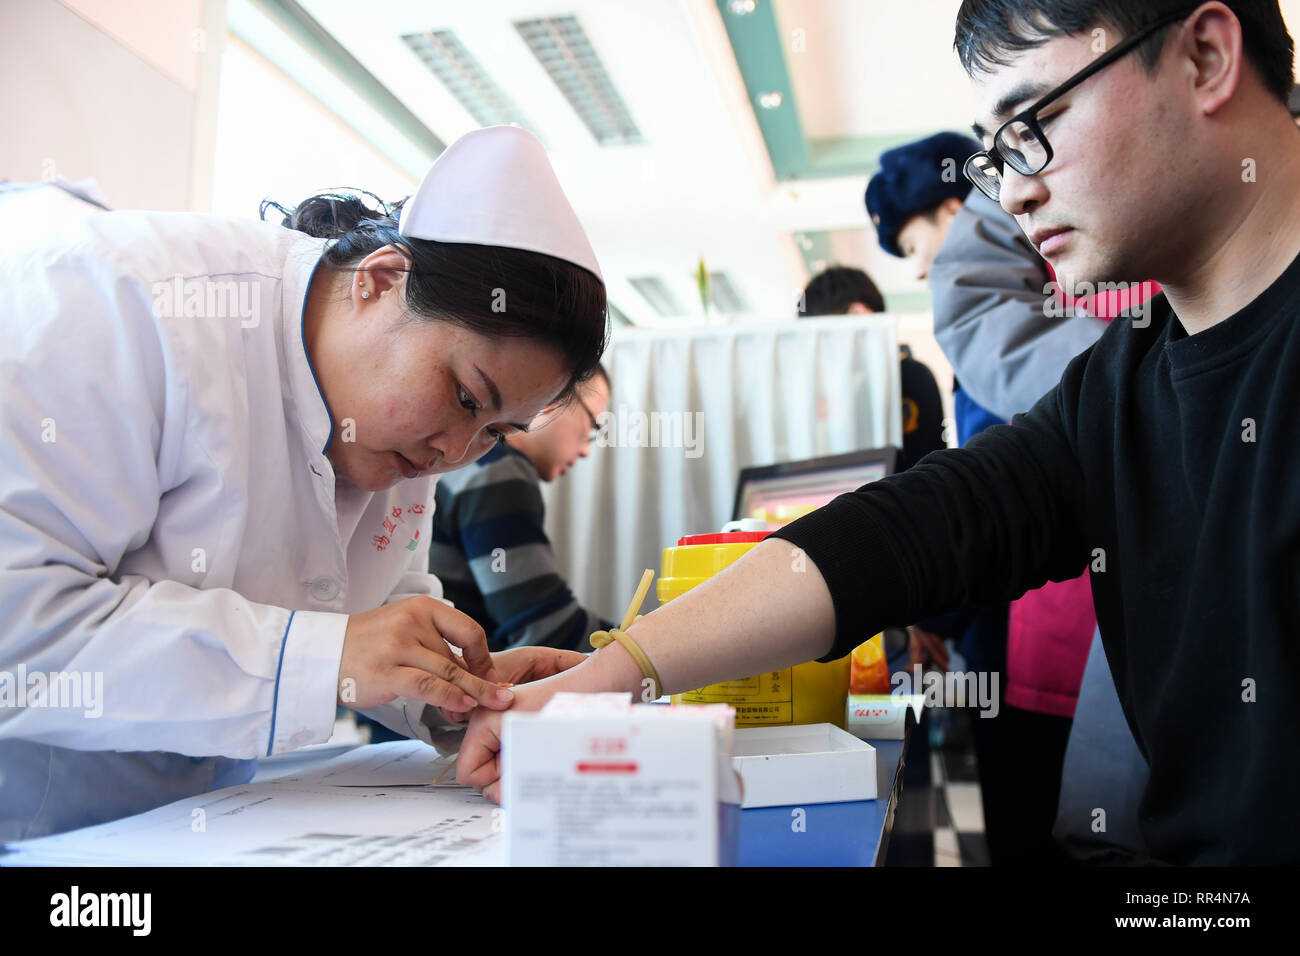 Xilingol. 24th Feb, 2019. Volunteers donate blood for the injured of a mine accident at the blood bank of Xilingol League in north China's Inner Mongolia Autonomous Region, Feb. 24, 2019. A total of 21 people have been killed and 29 others injured after a vehicle lost control due to faulty brakes Saturday at a mining company in northern China's Inner Mongolia Autonomous Region, local authorities said Sunday morning. Credit: Liu Lei/Xinhua/Alamy Live News - Stock Image